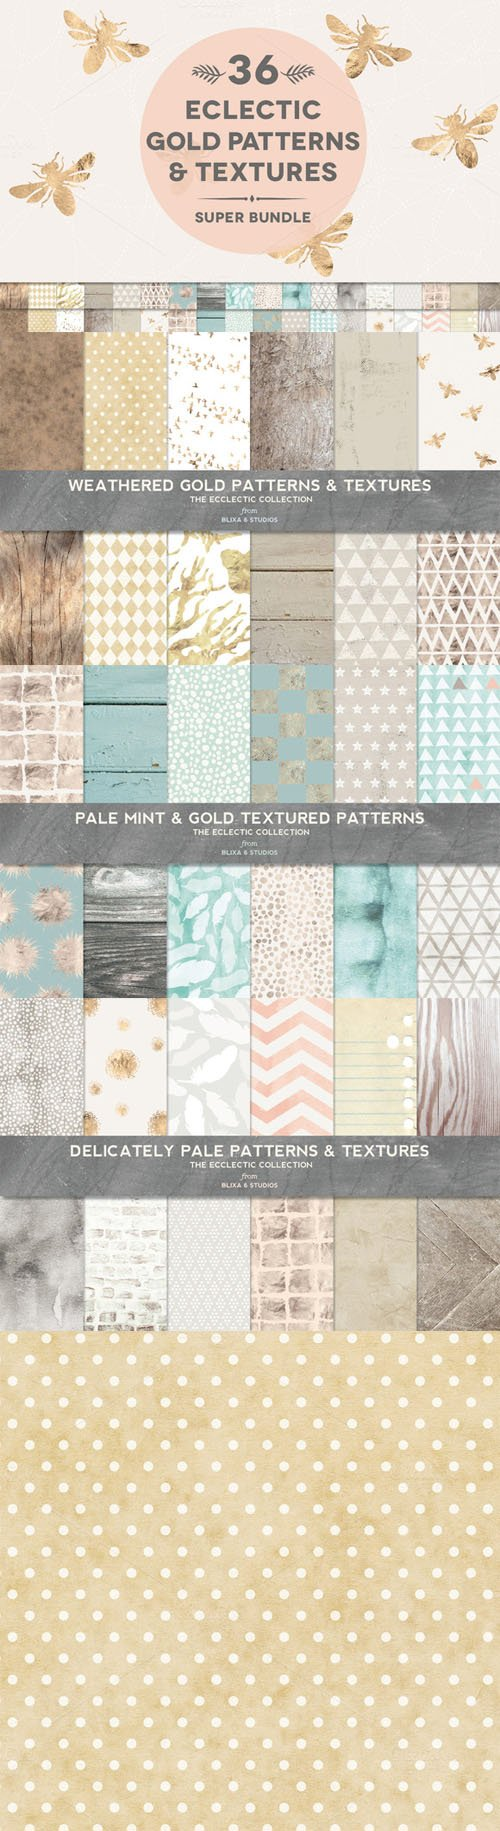 36 Gold & Weathered Texture Bundle - Creativemarket 305168